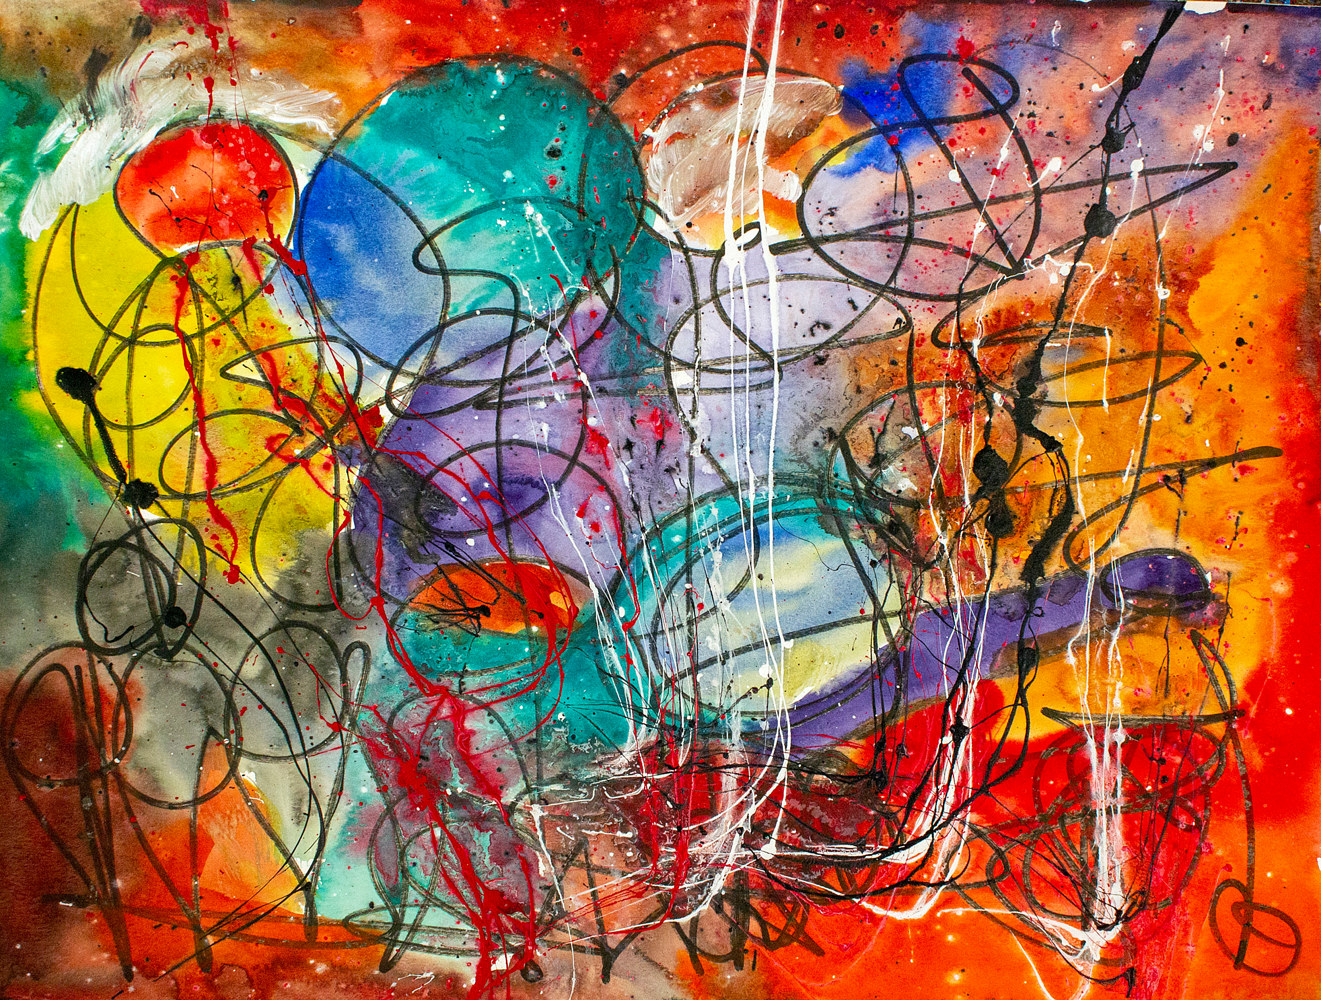 Acrylic painting Whirlwind of emotions | Tourbillon d'emotions by Nathalie Gribinski